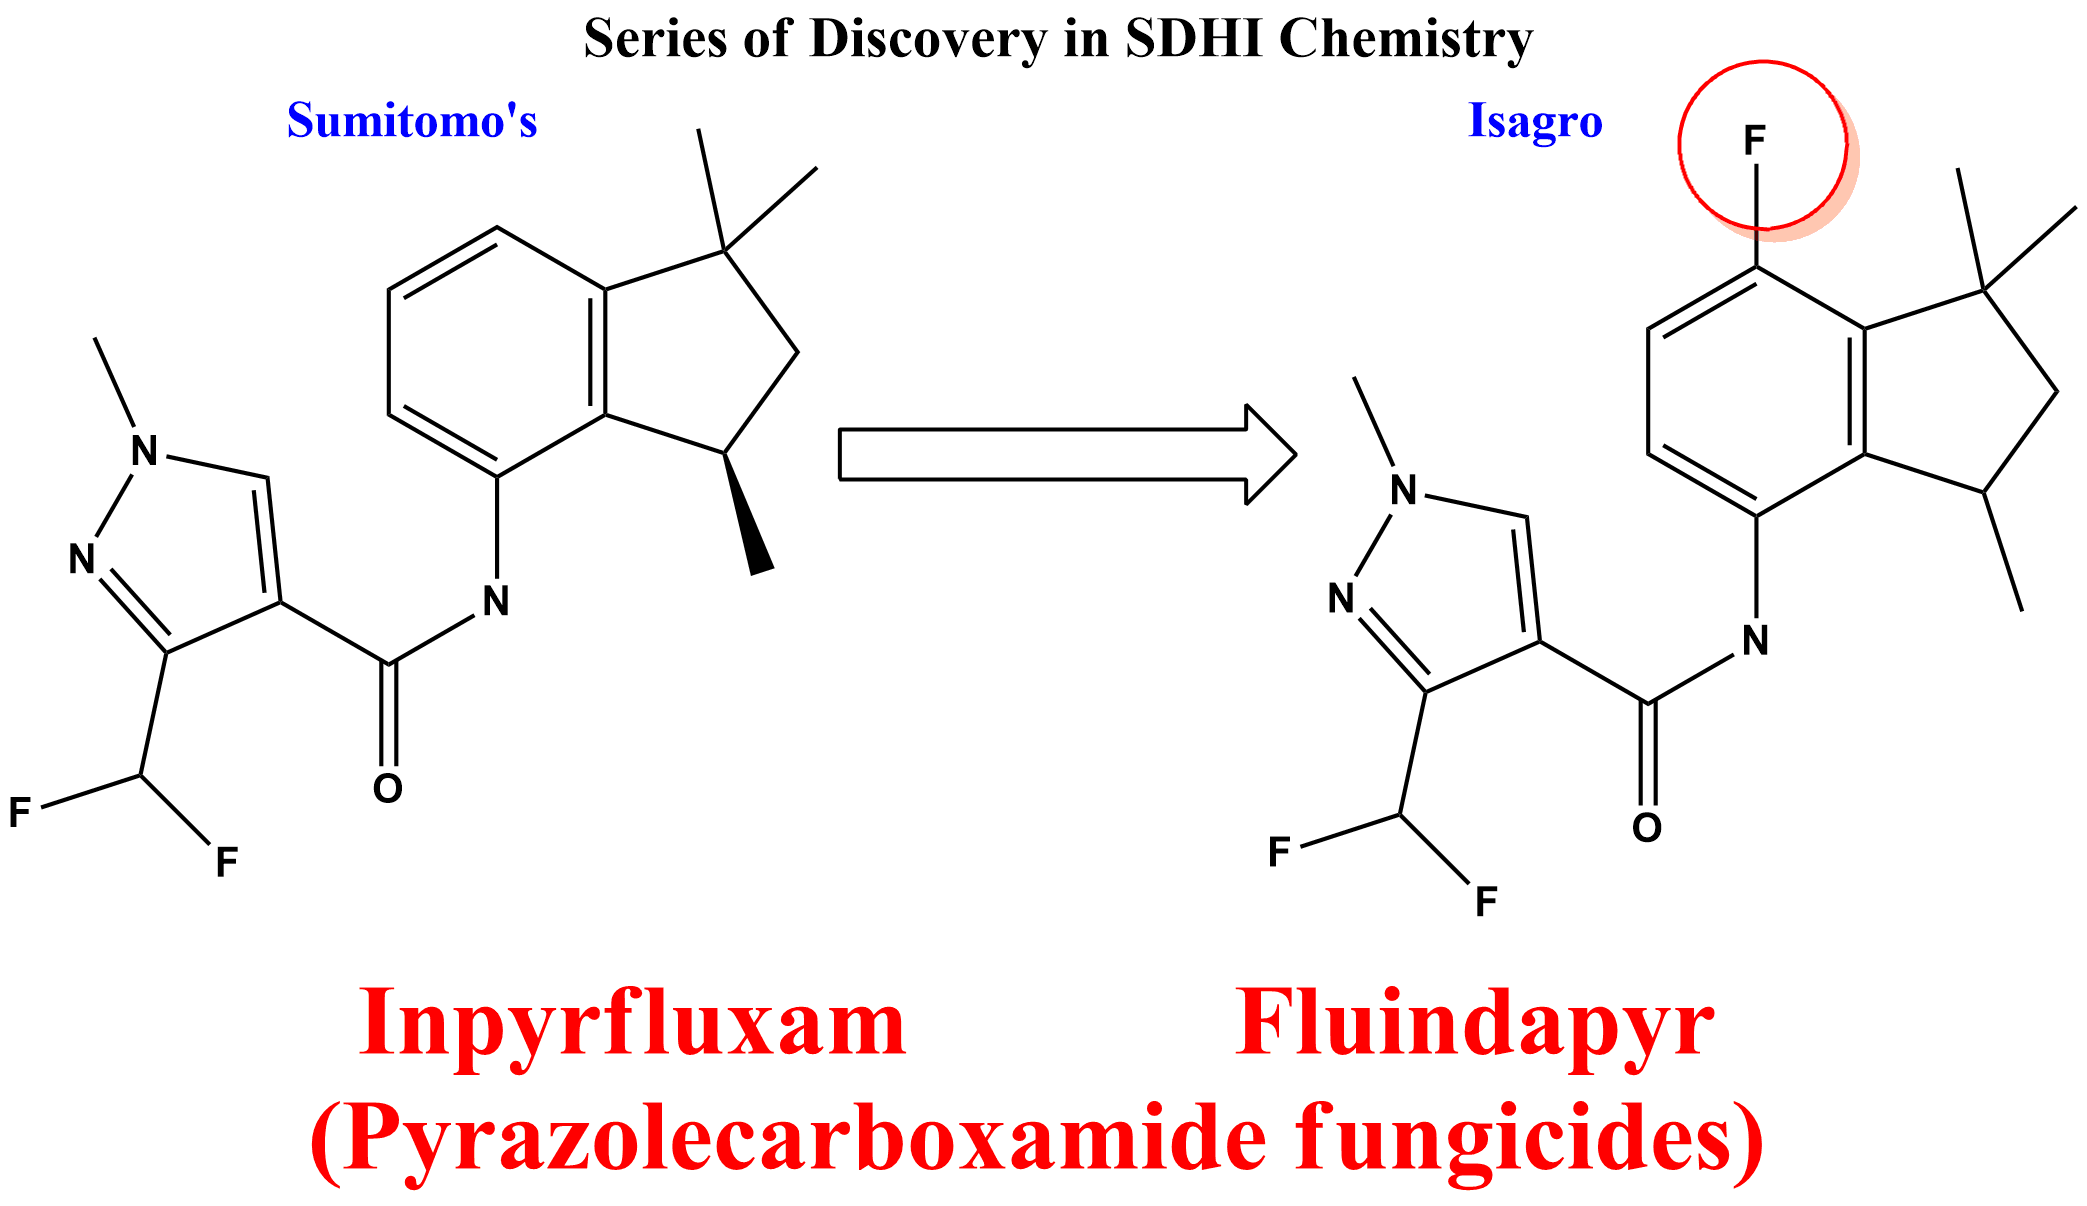 Fluindapyr: A new fungicide molecule from Isagro, effective